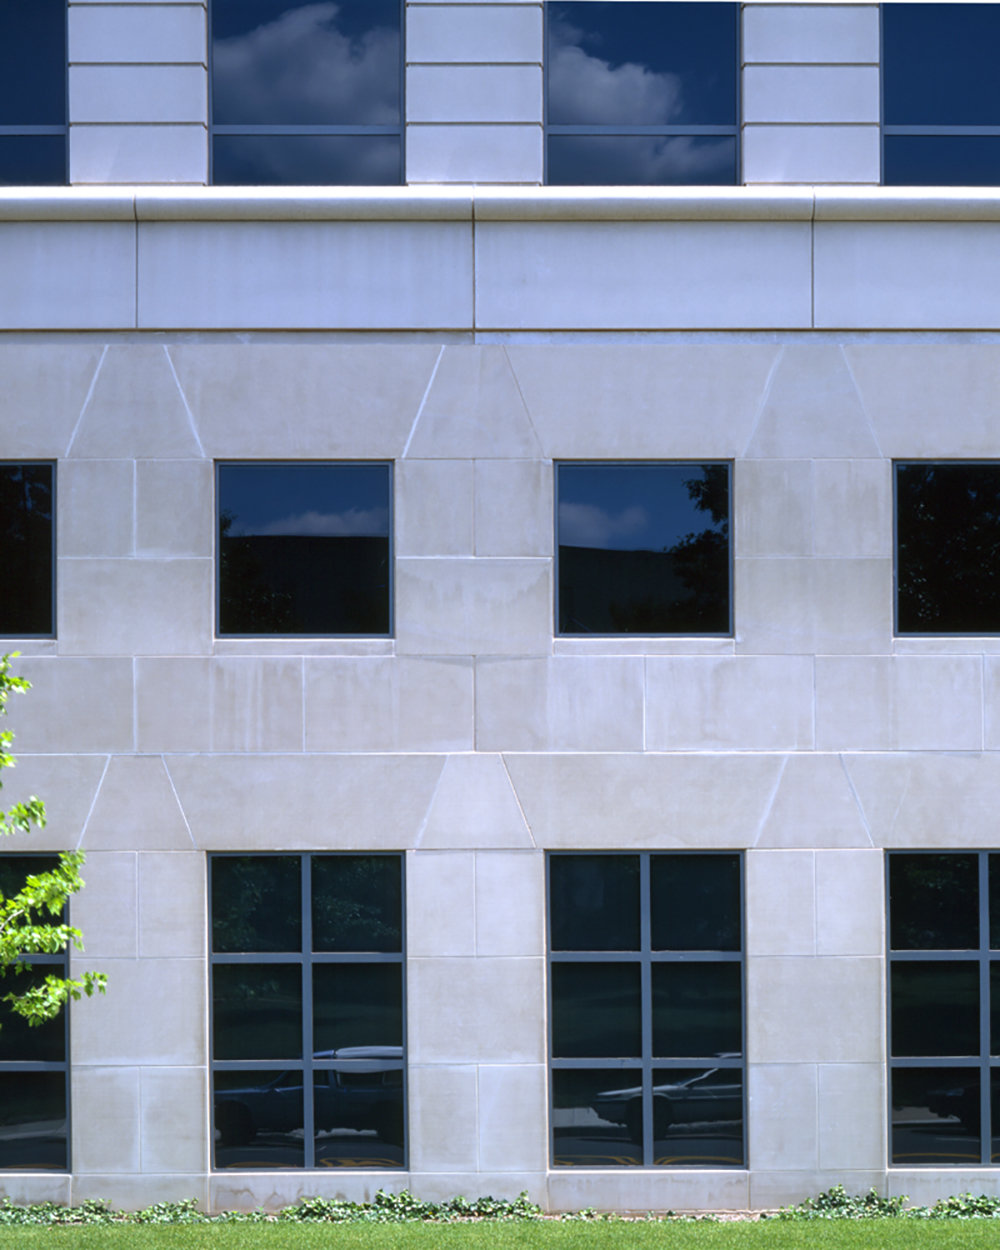 4 tskp ct education association capitol place exterior detail of walls and windows from street 1400 0x0x1000x1250 q85